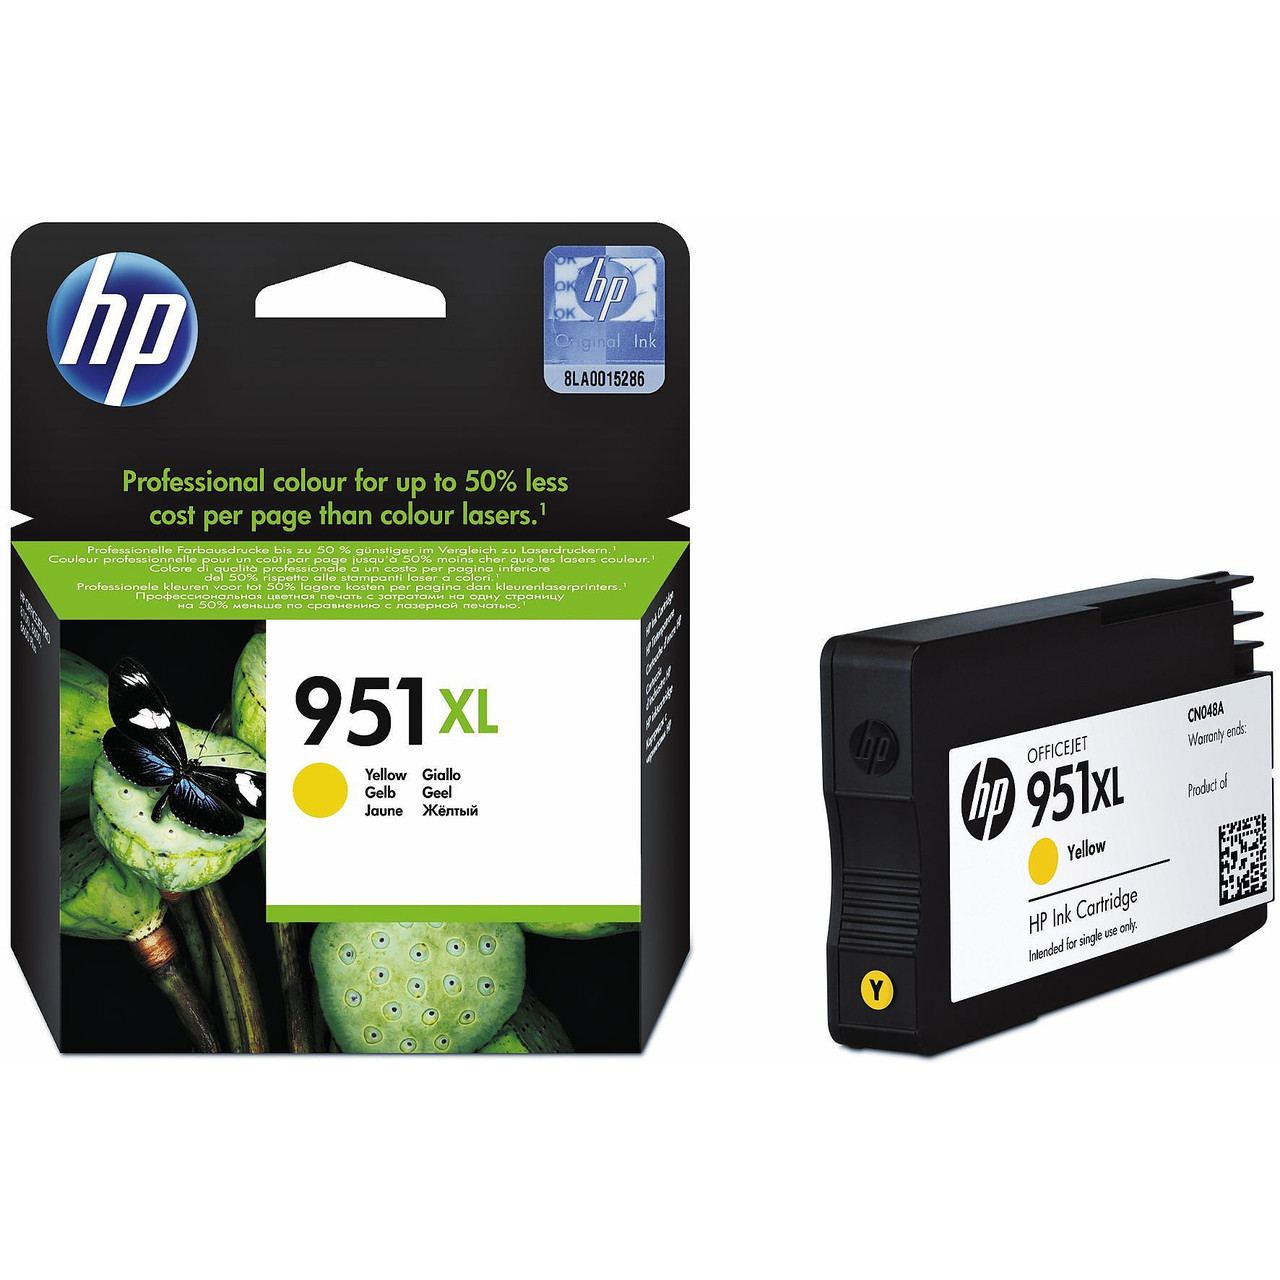 Картридж HP CN048AE#BGX Desk jet/№951/yellow/16 ml